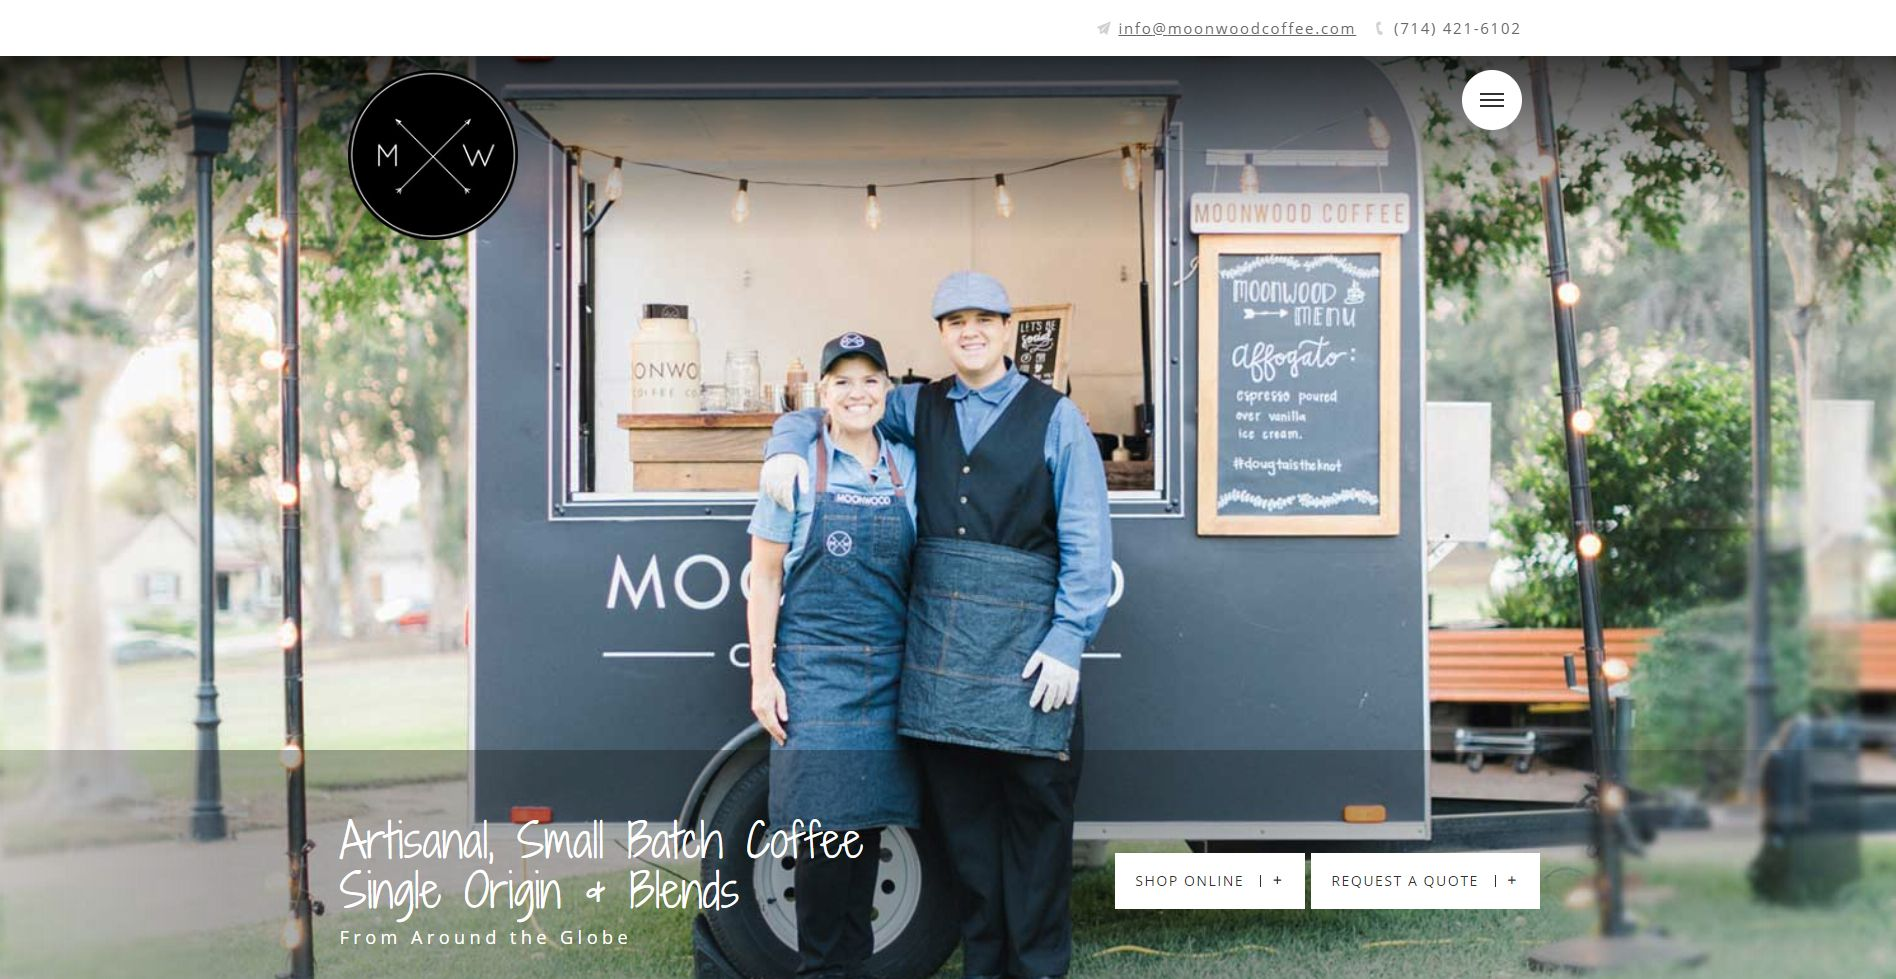 Moonwood Coffee Website